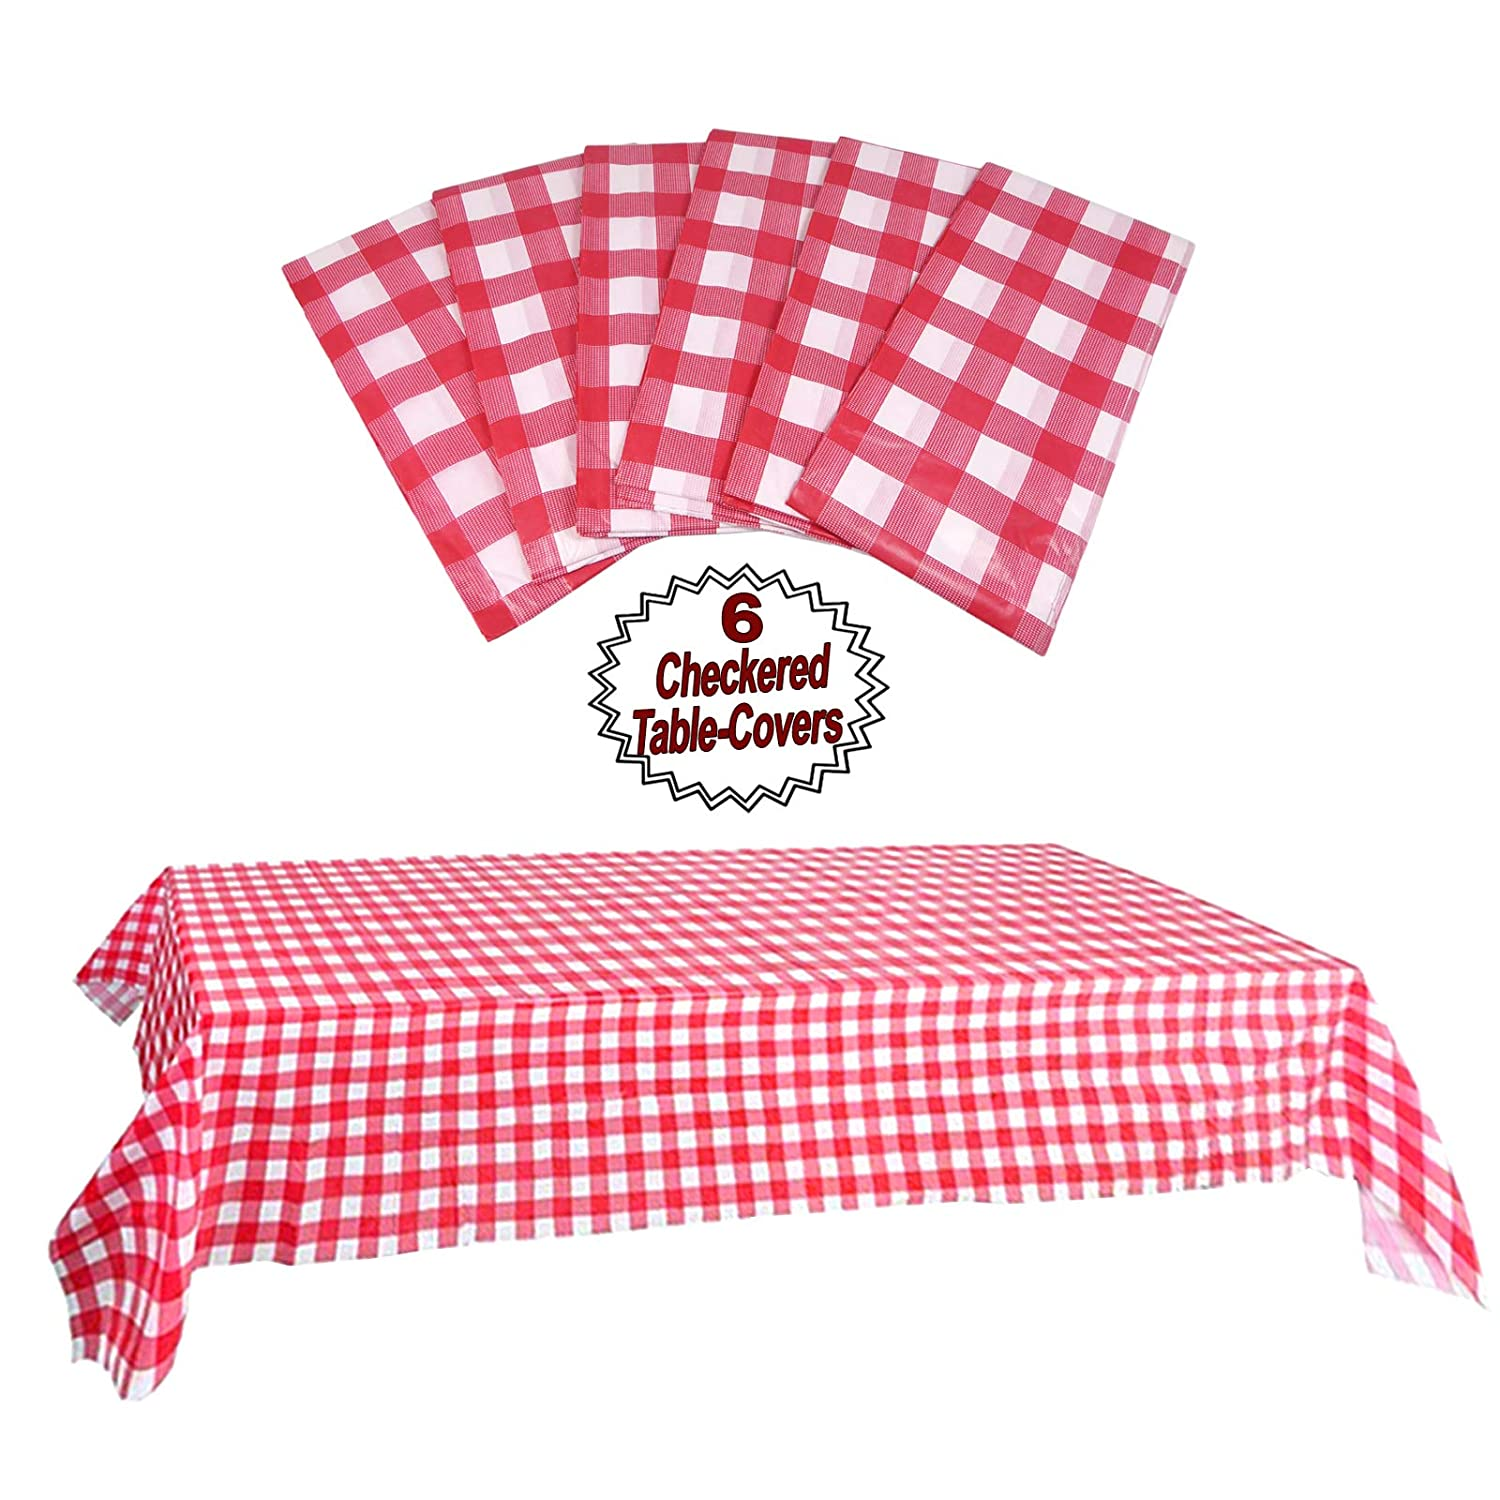 Prime Amazon Com Plastic Checkered Tablecloth 6 Pcs Pack 54 Ncnpc Chair Design For Home Ncnpcorg